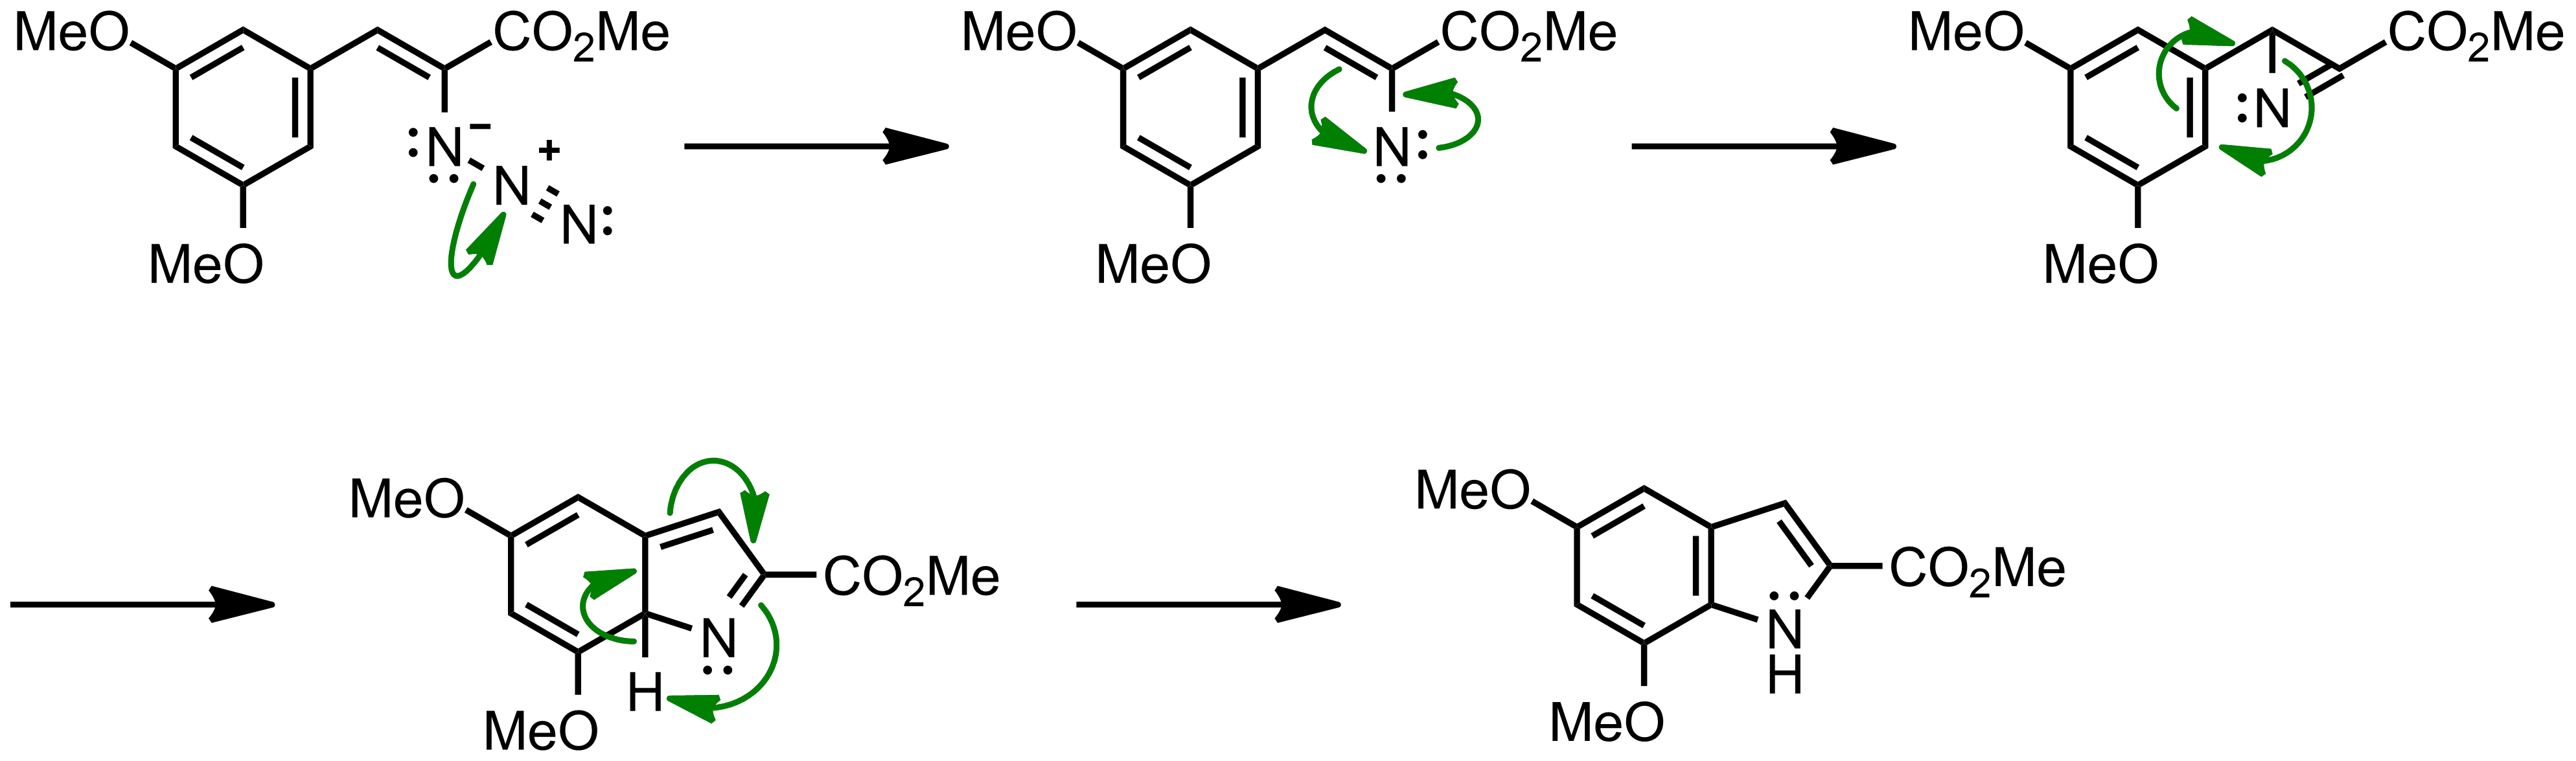 Mechanism of the Hemetsberger-Knittel Indole Synthesis